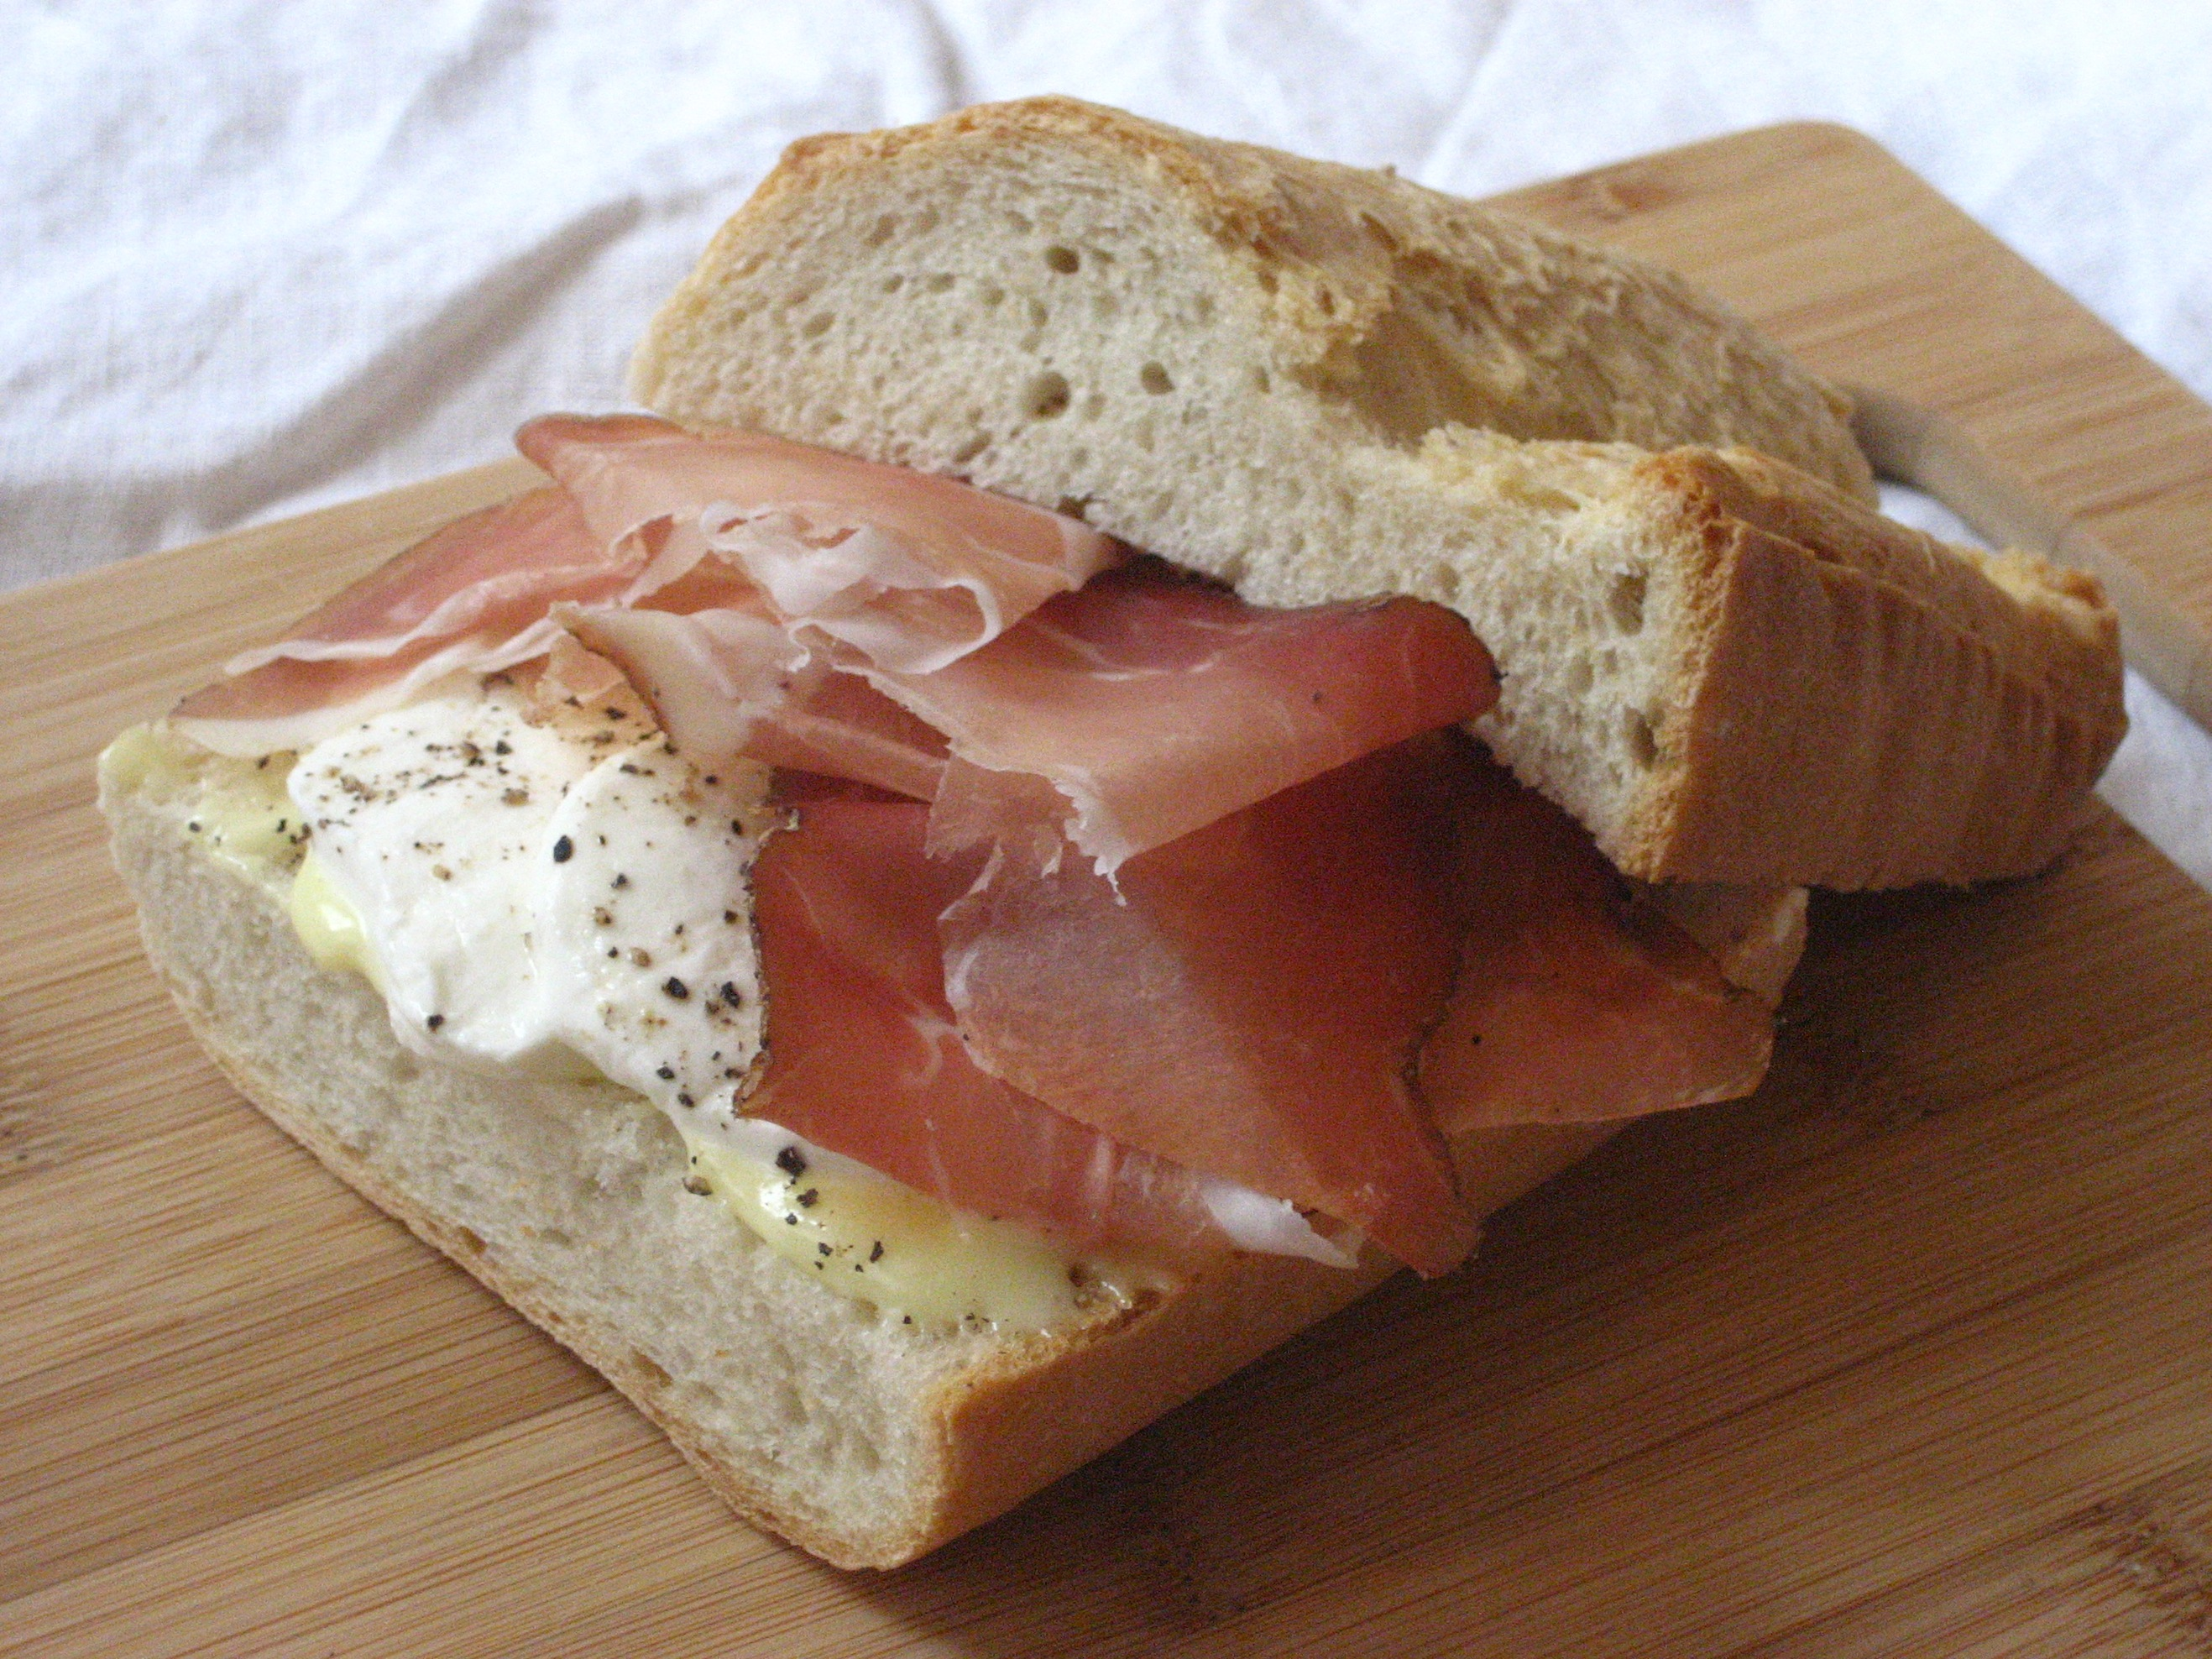 Speck and Mozzarella Baguette with Homemade Mayonnaise